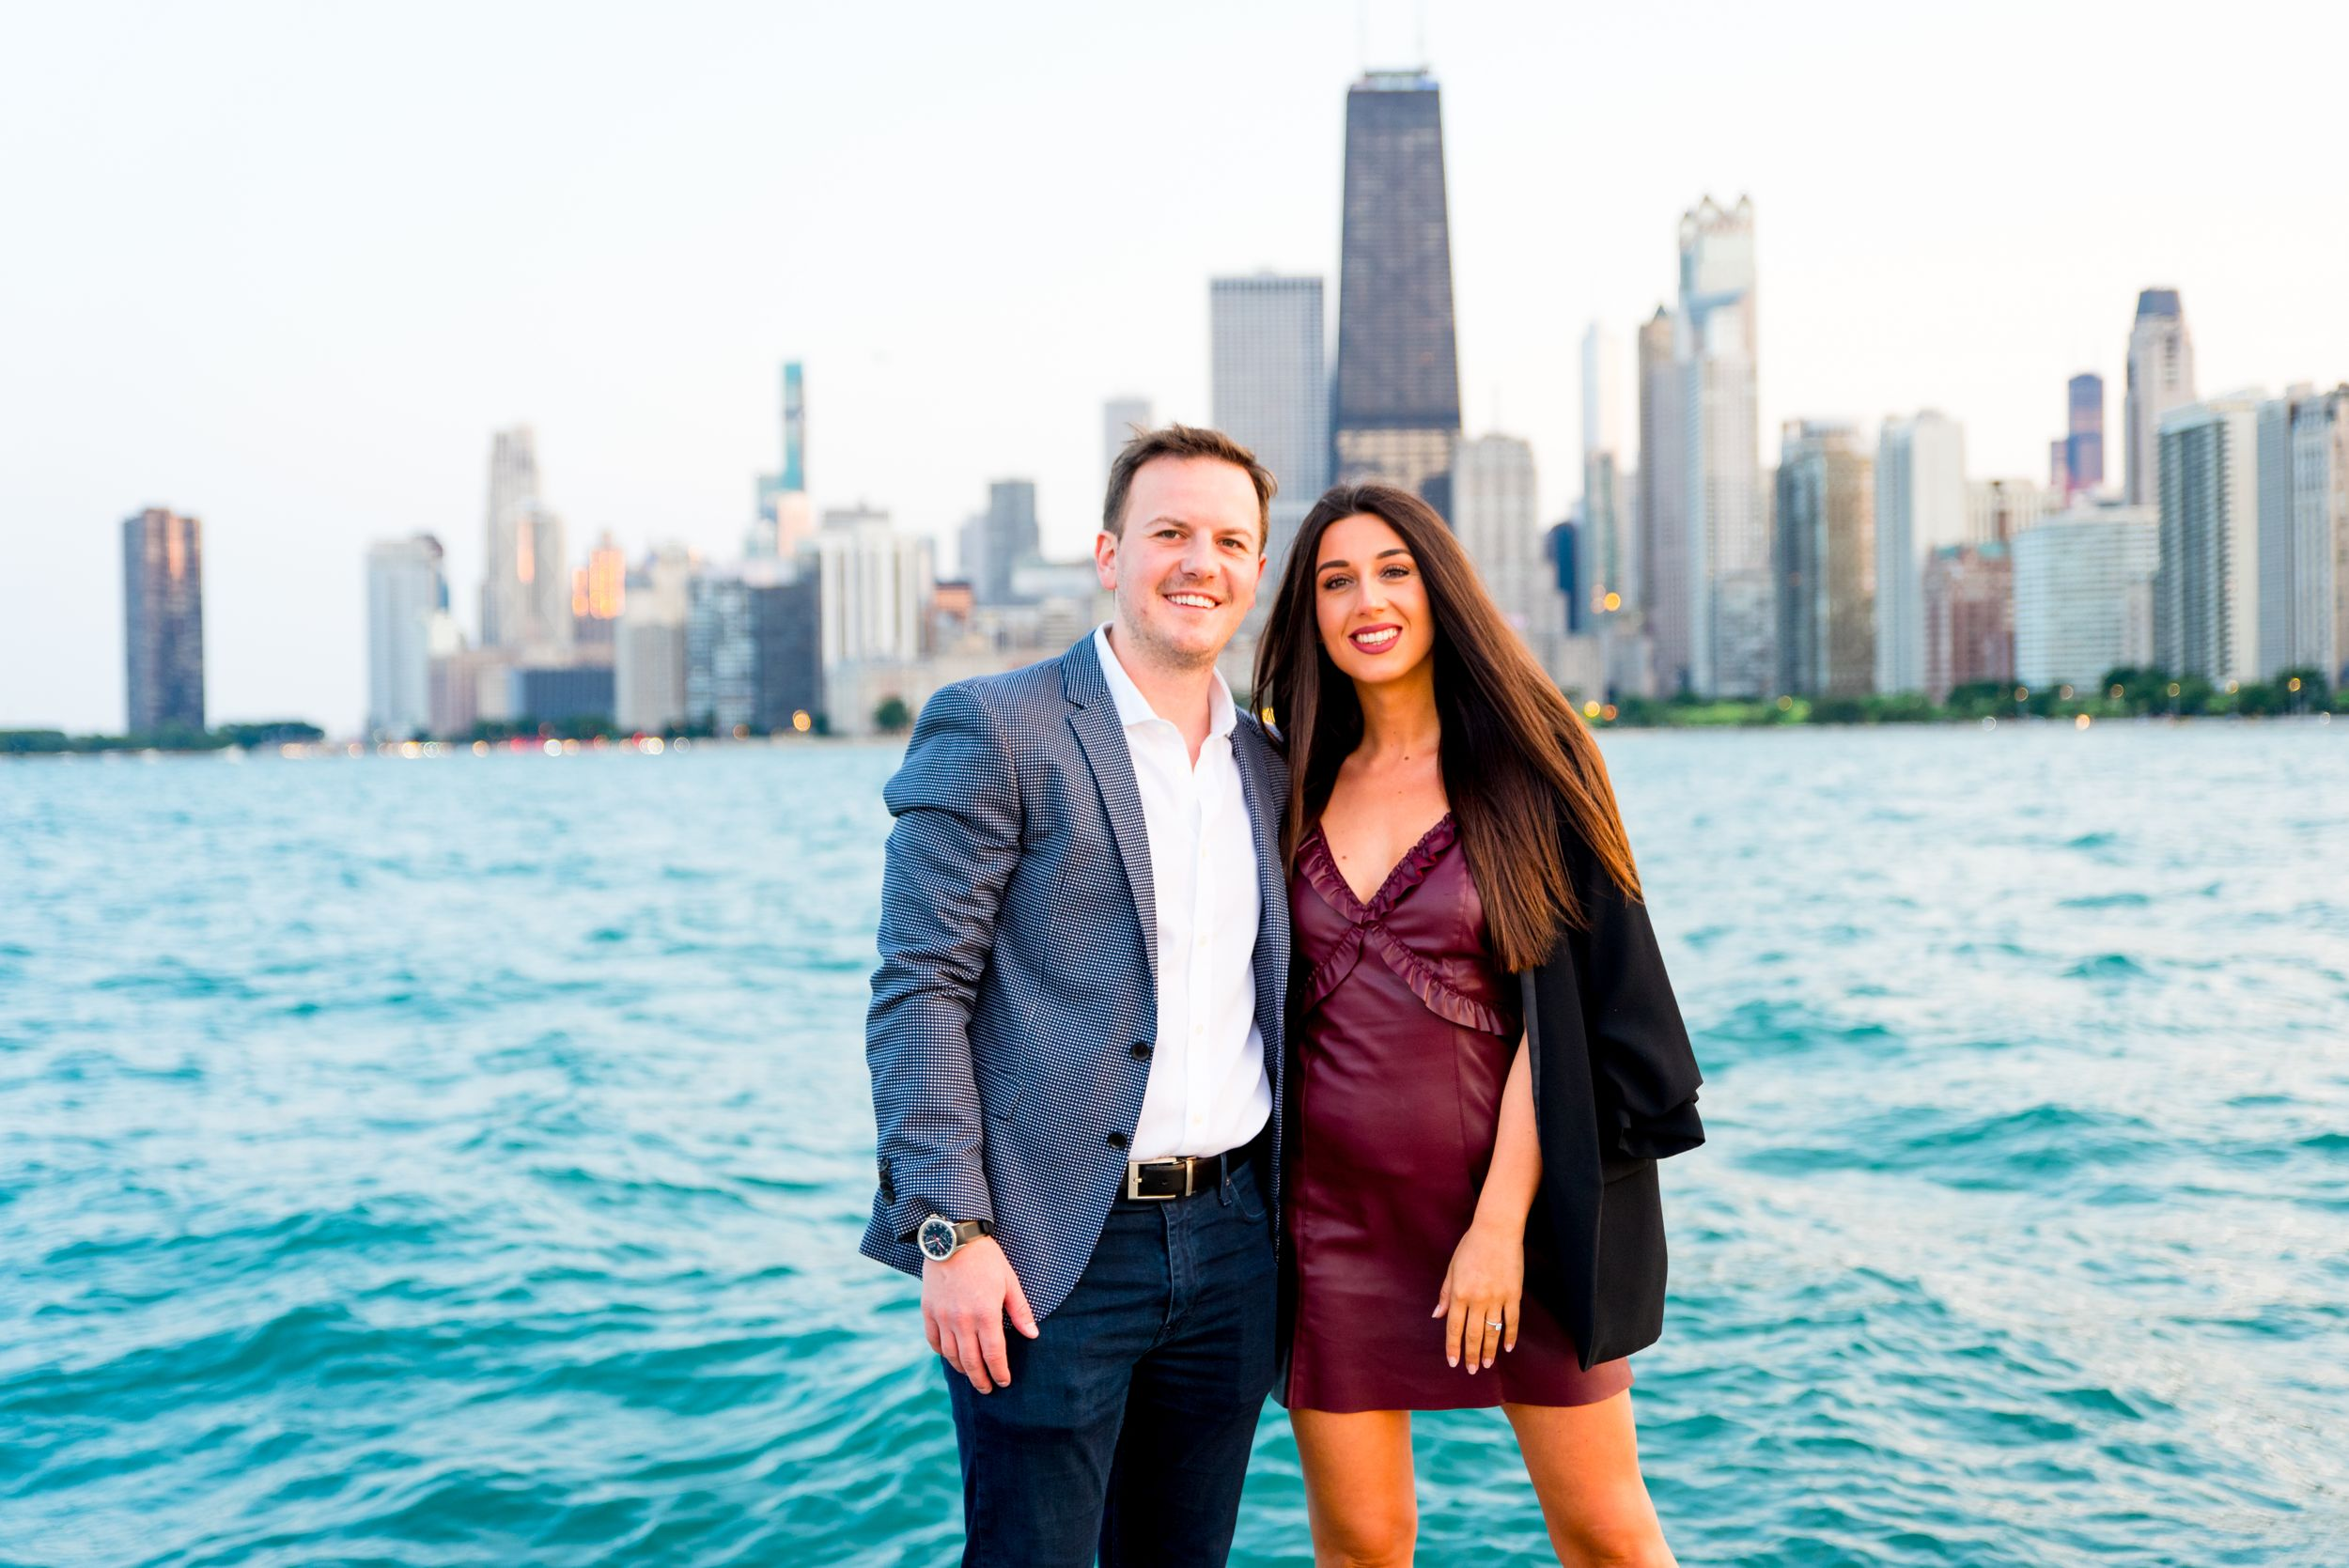 man and woman smiling holding hands in front of Chicago skyline after Chicago proposal